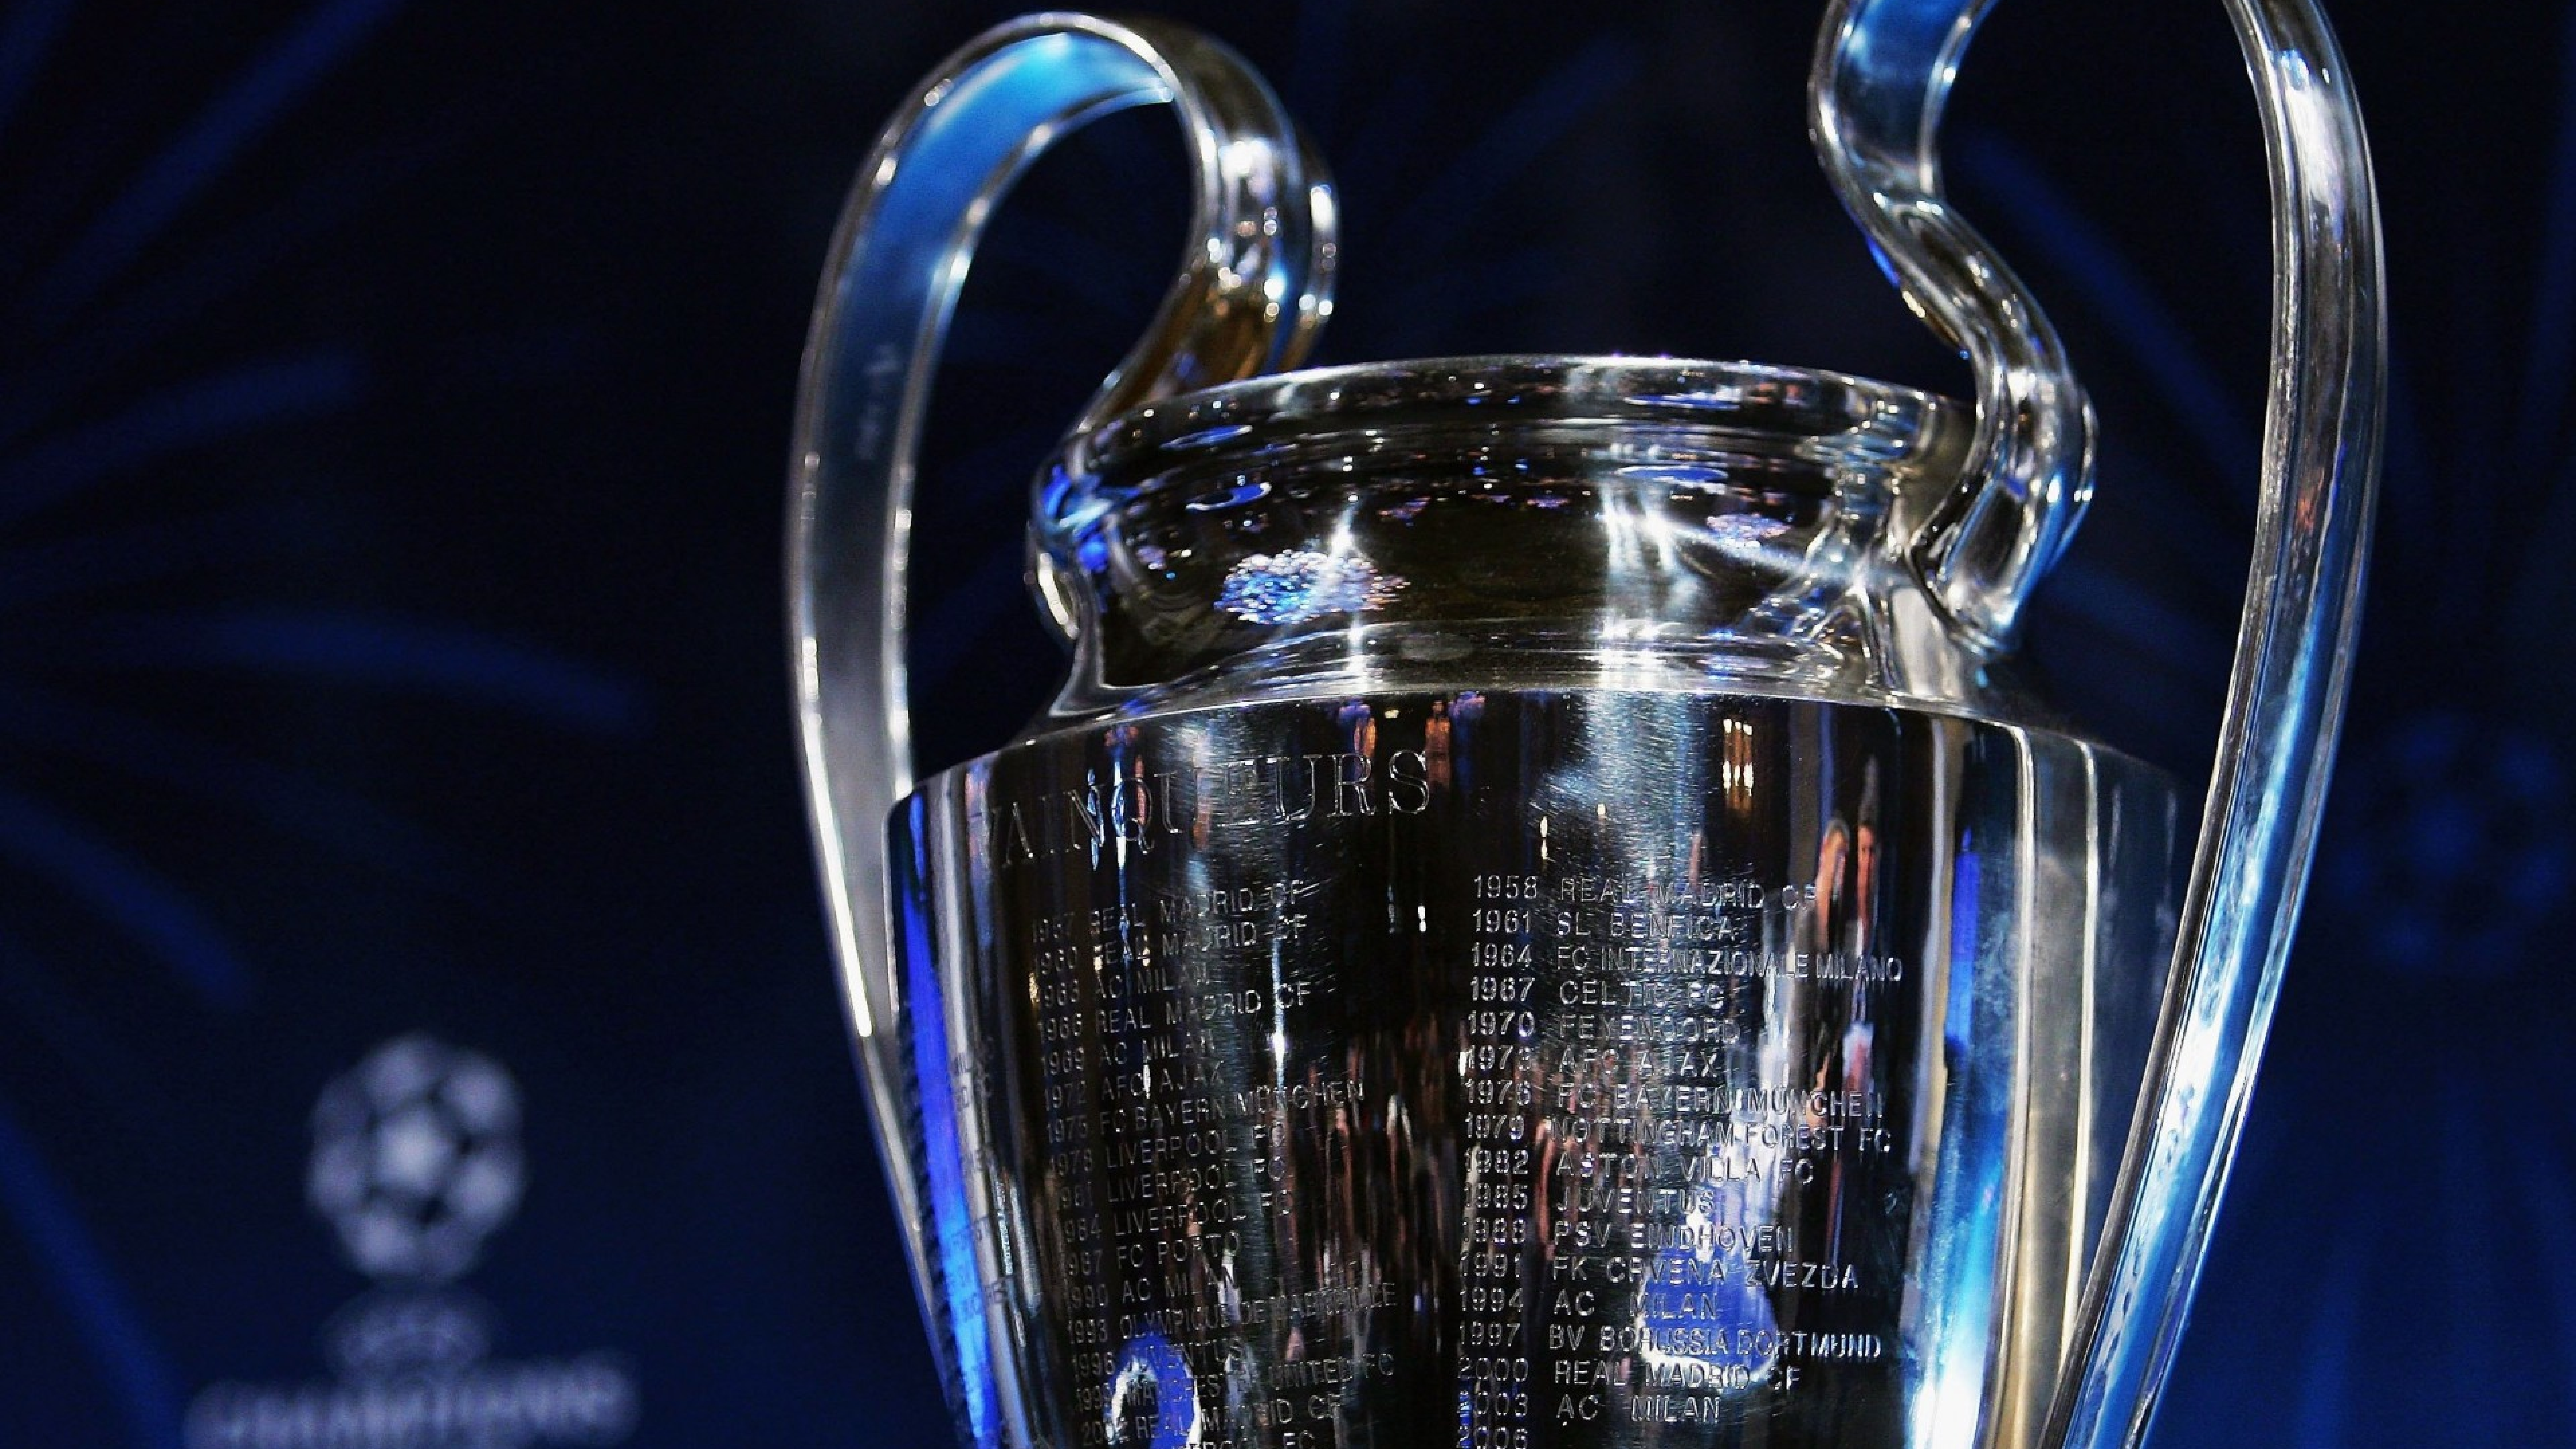 7680x4320 Uefa Champions League Cup 8k Wallpaper Hd Sports 4k Wallpapers Images Photos And Background